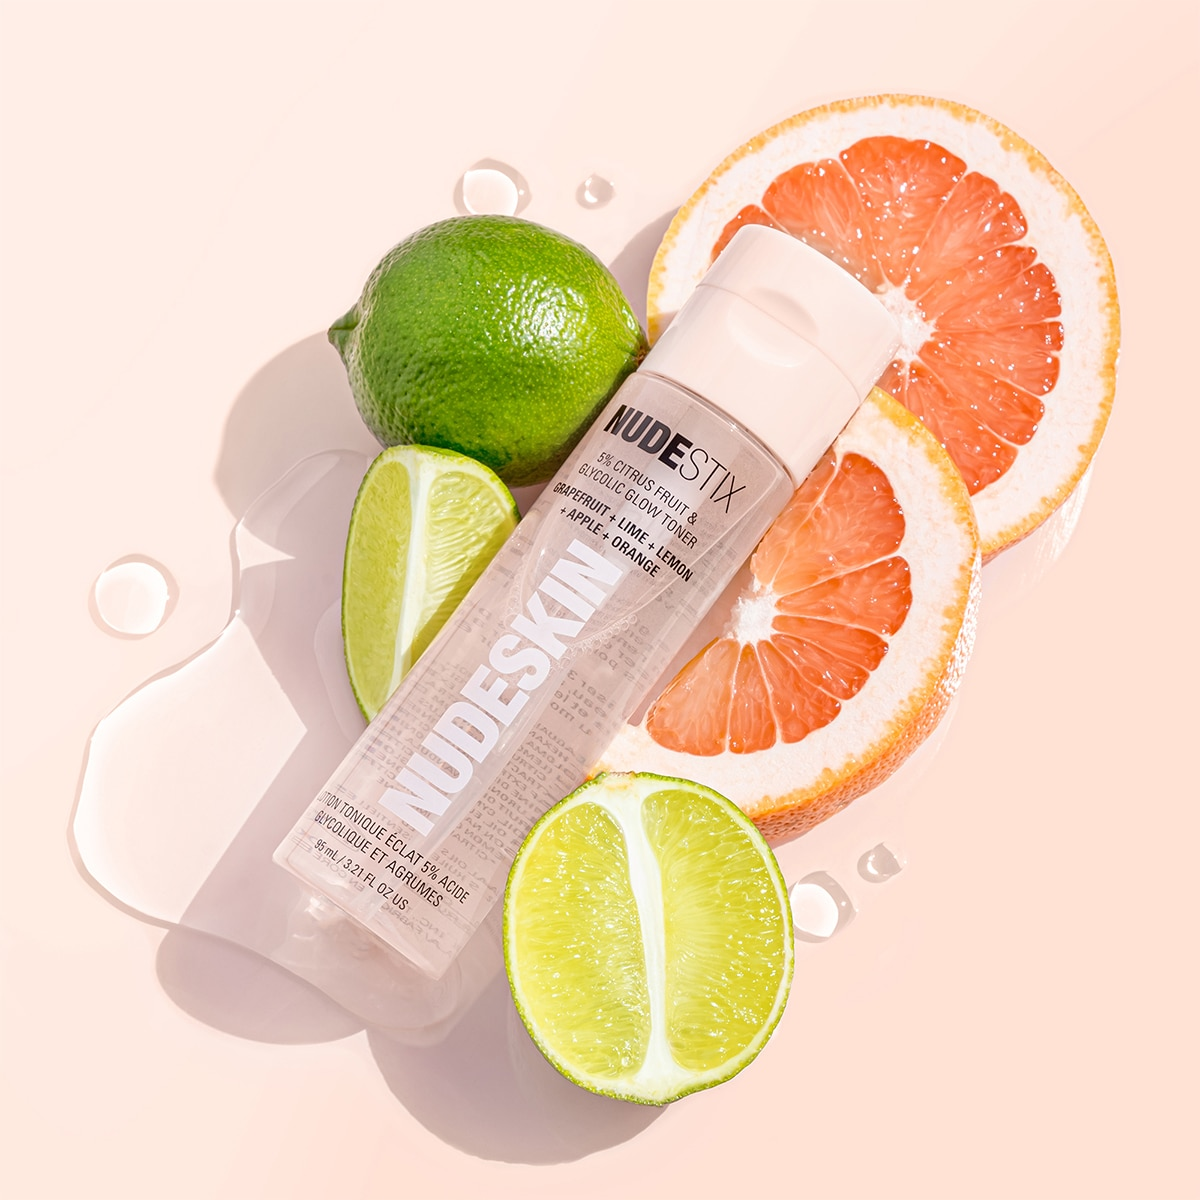 NUDESKIN 5% CITRUS FRUIT & GLYCOLIC GLOW TONER 95ML (TÓNICO FACIAL)